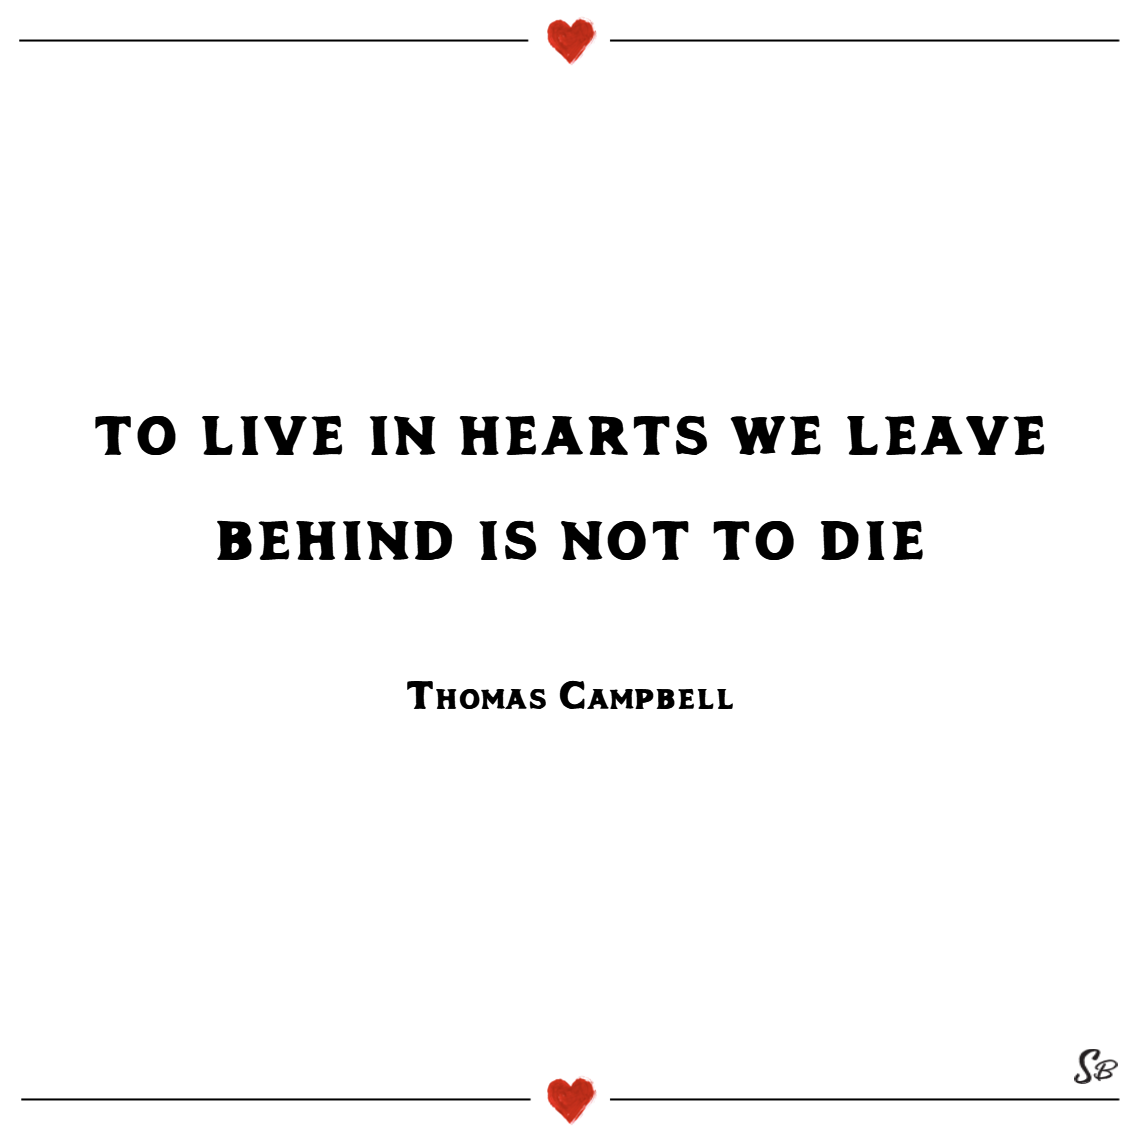 To live in hearts we leave behind is not to die. – thomas campbell